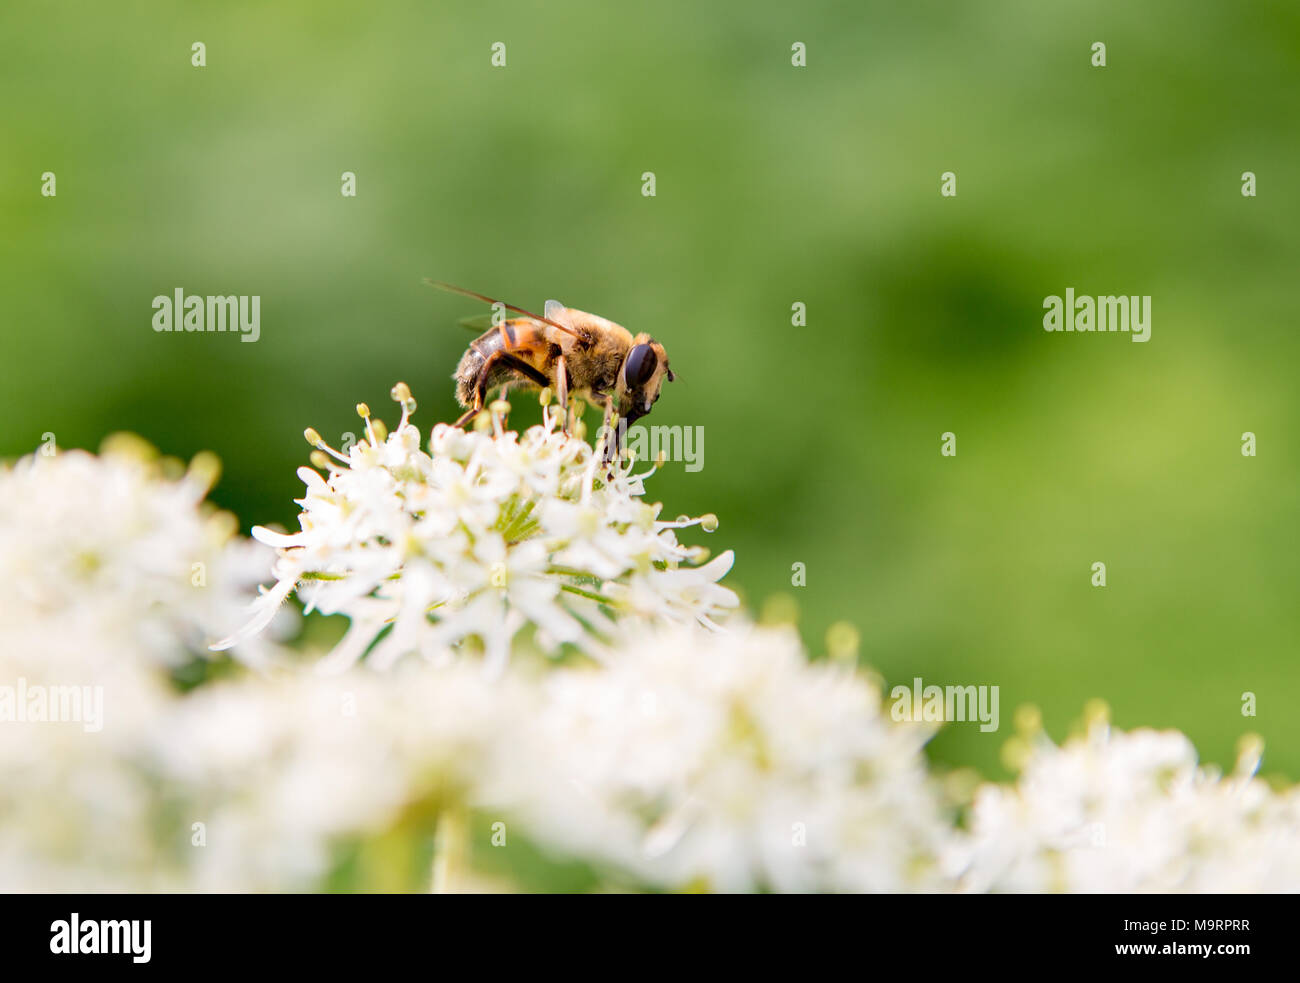 Honey bee on a white and yellow flower with a out of focus green nature background. - Stock Image